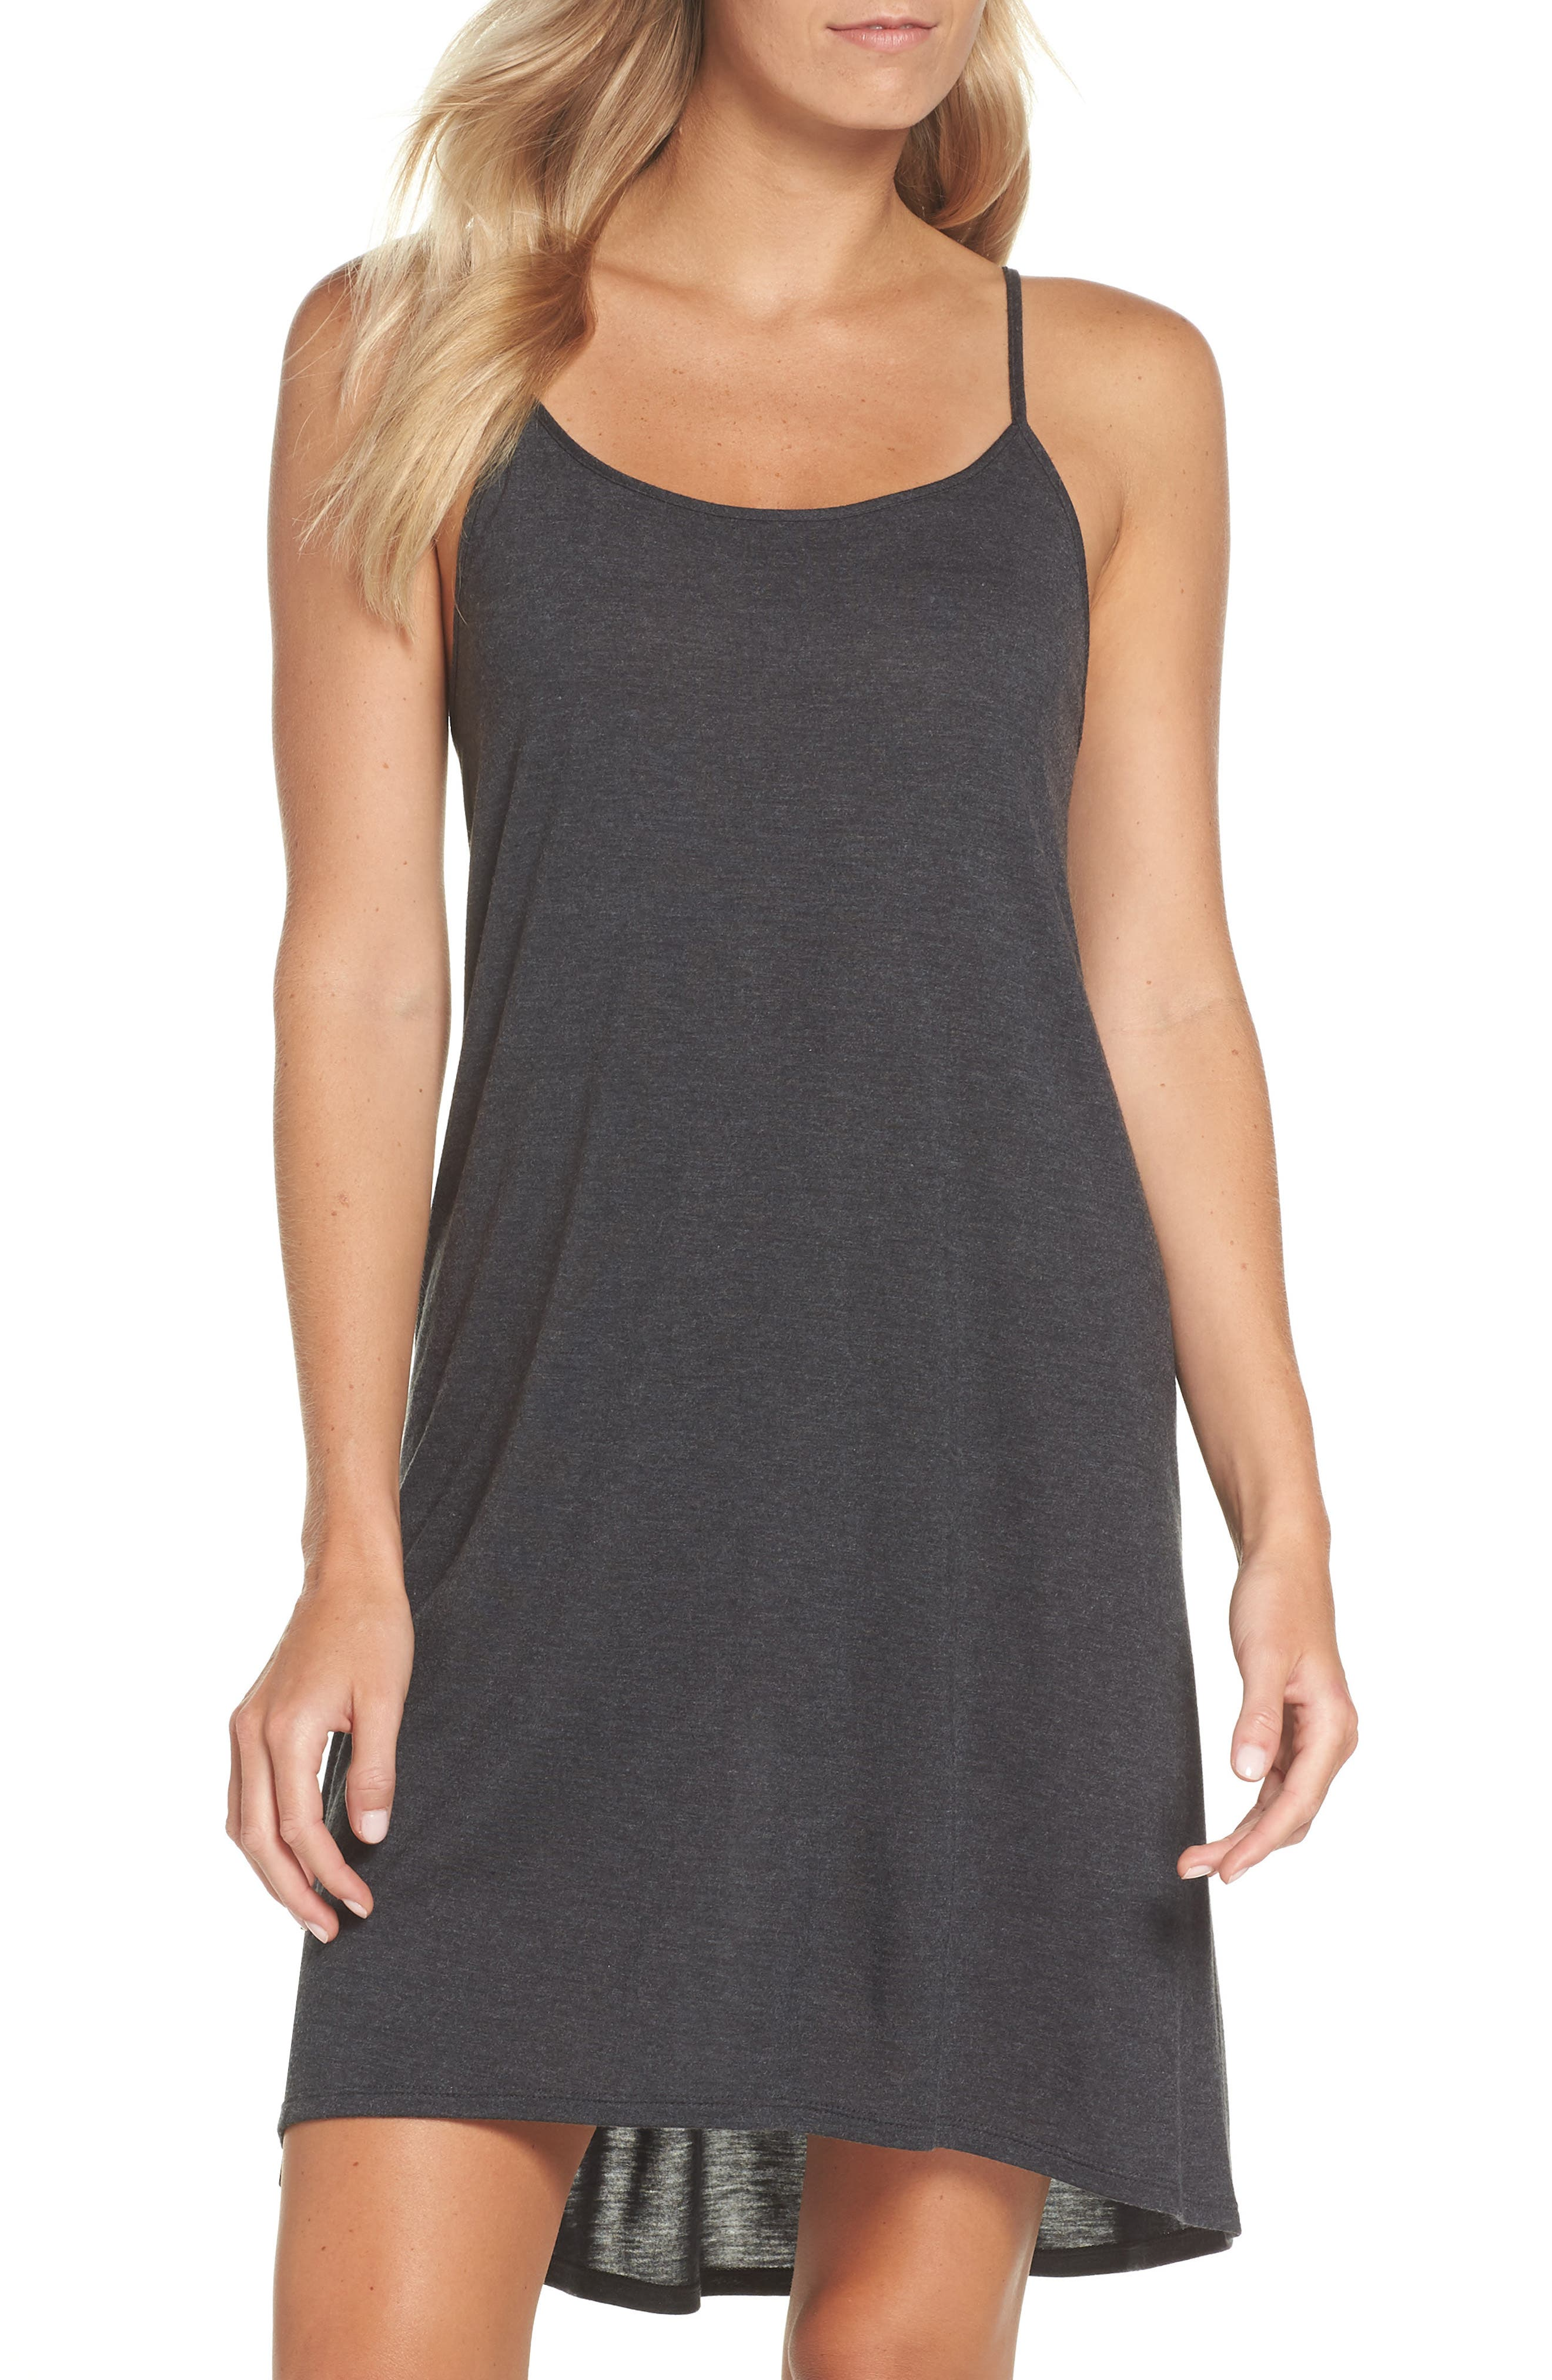 Heather Tees Chemise,                             Main thumbnail 1, color,                             HEATHER GRANITE